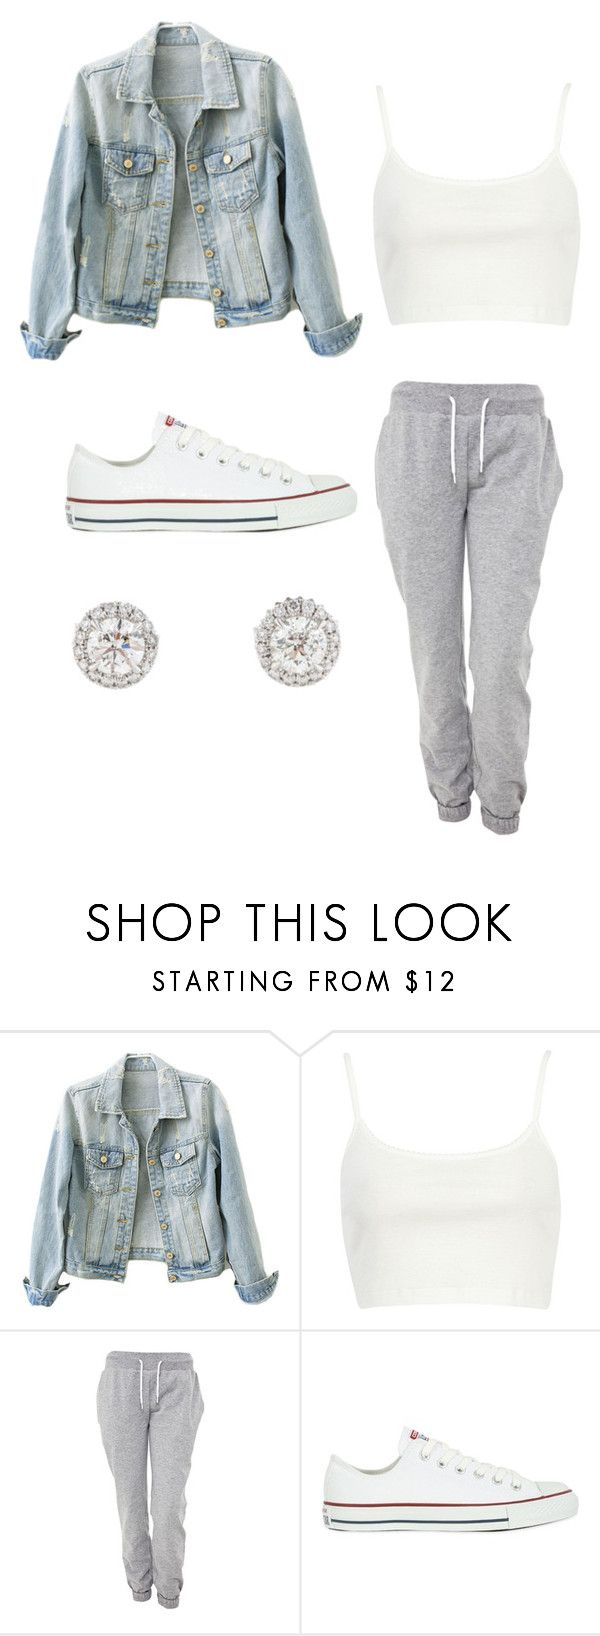 """Body / Dreezy"" by tiaramb11 on Polyvore featuring River Island, White Label and Converse"